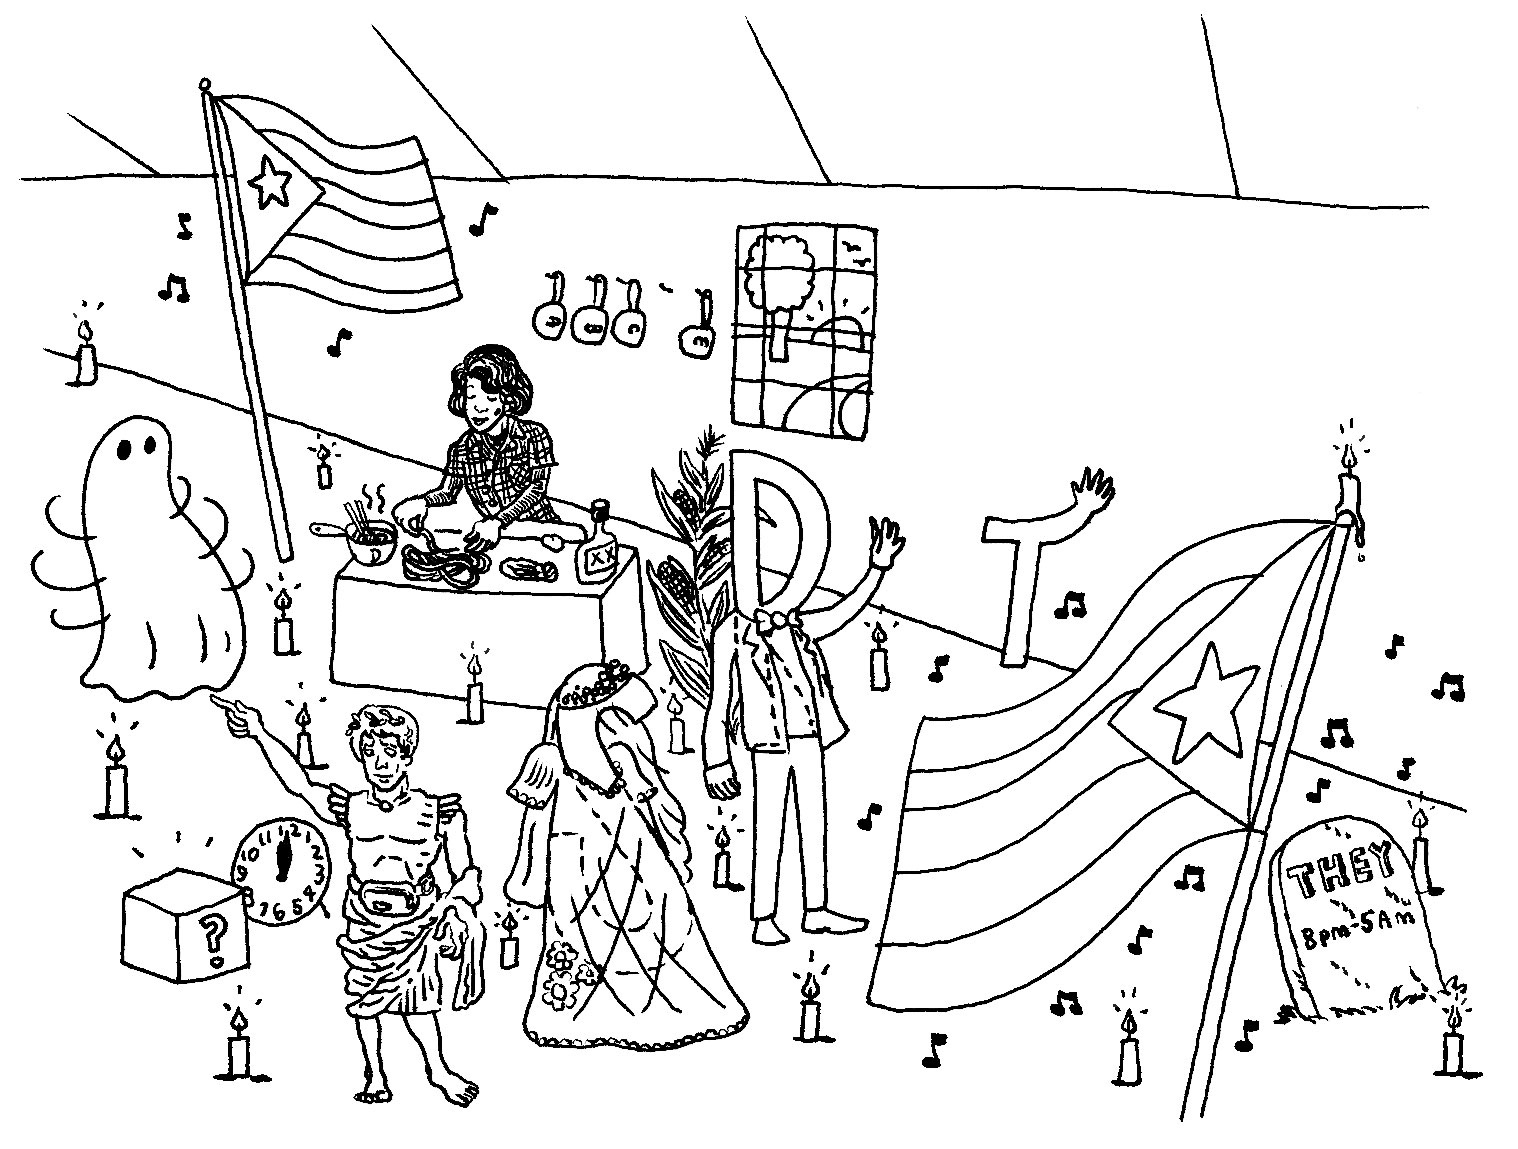 Wacky New Years Drawing Hints At The Criterion Collection